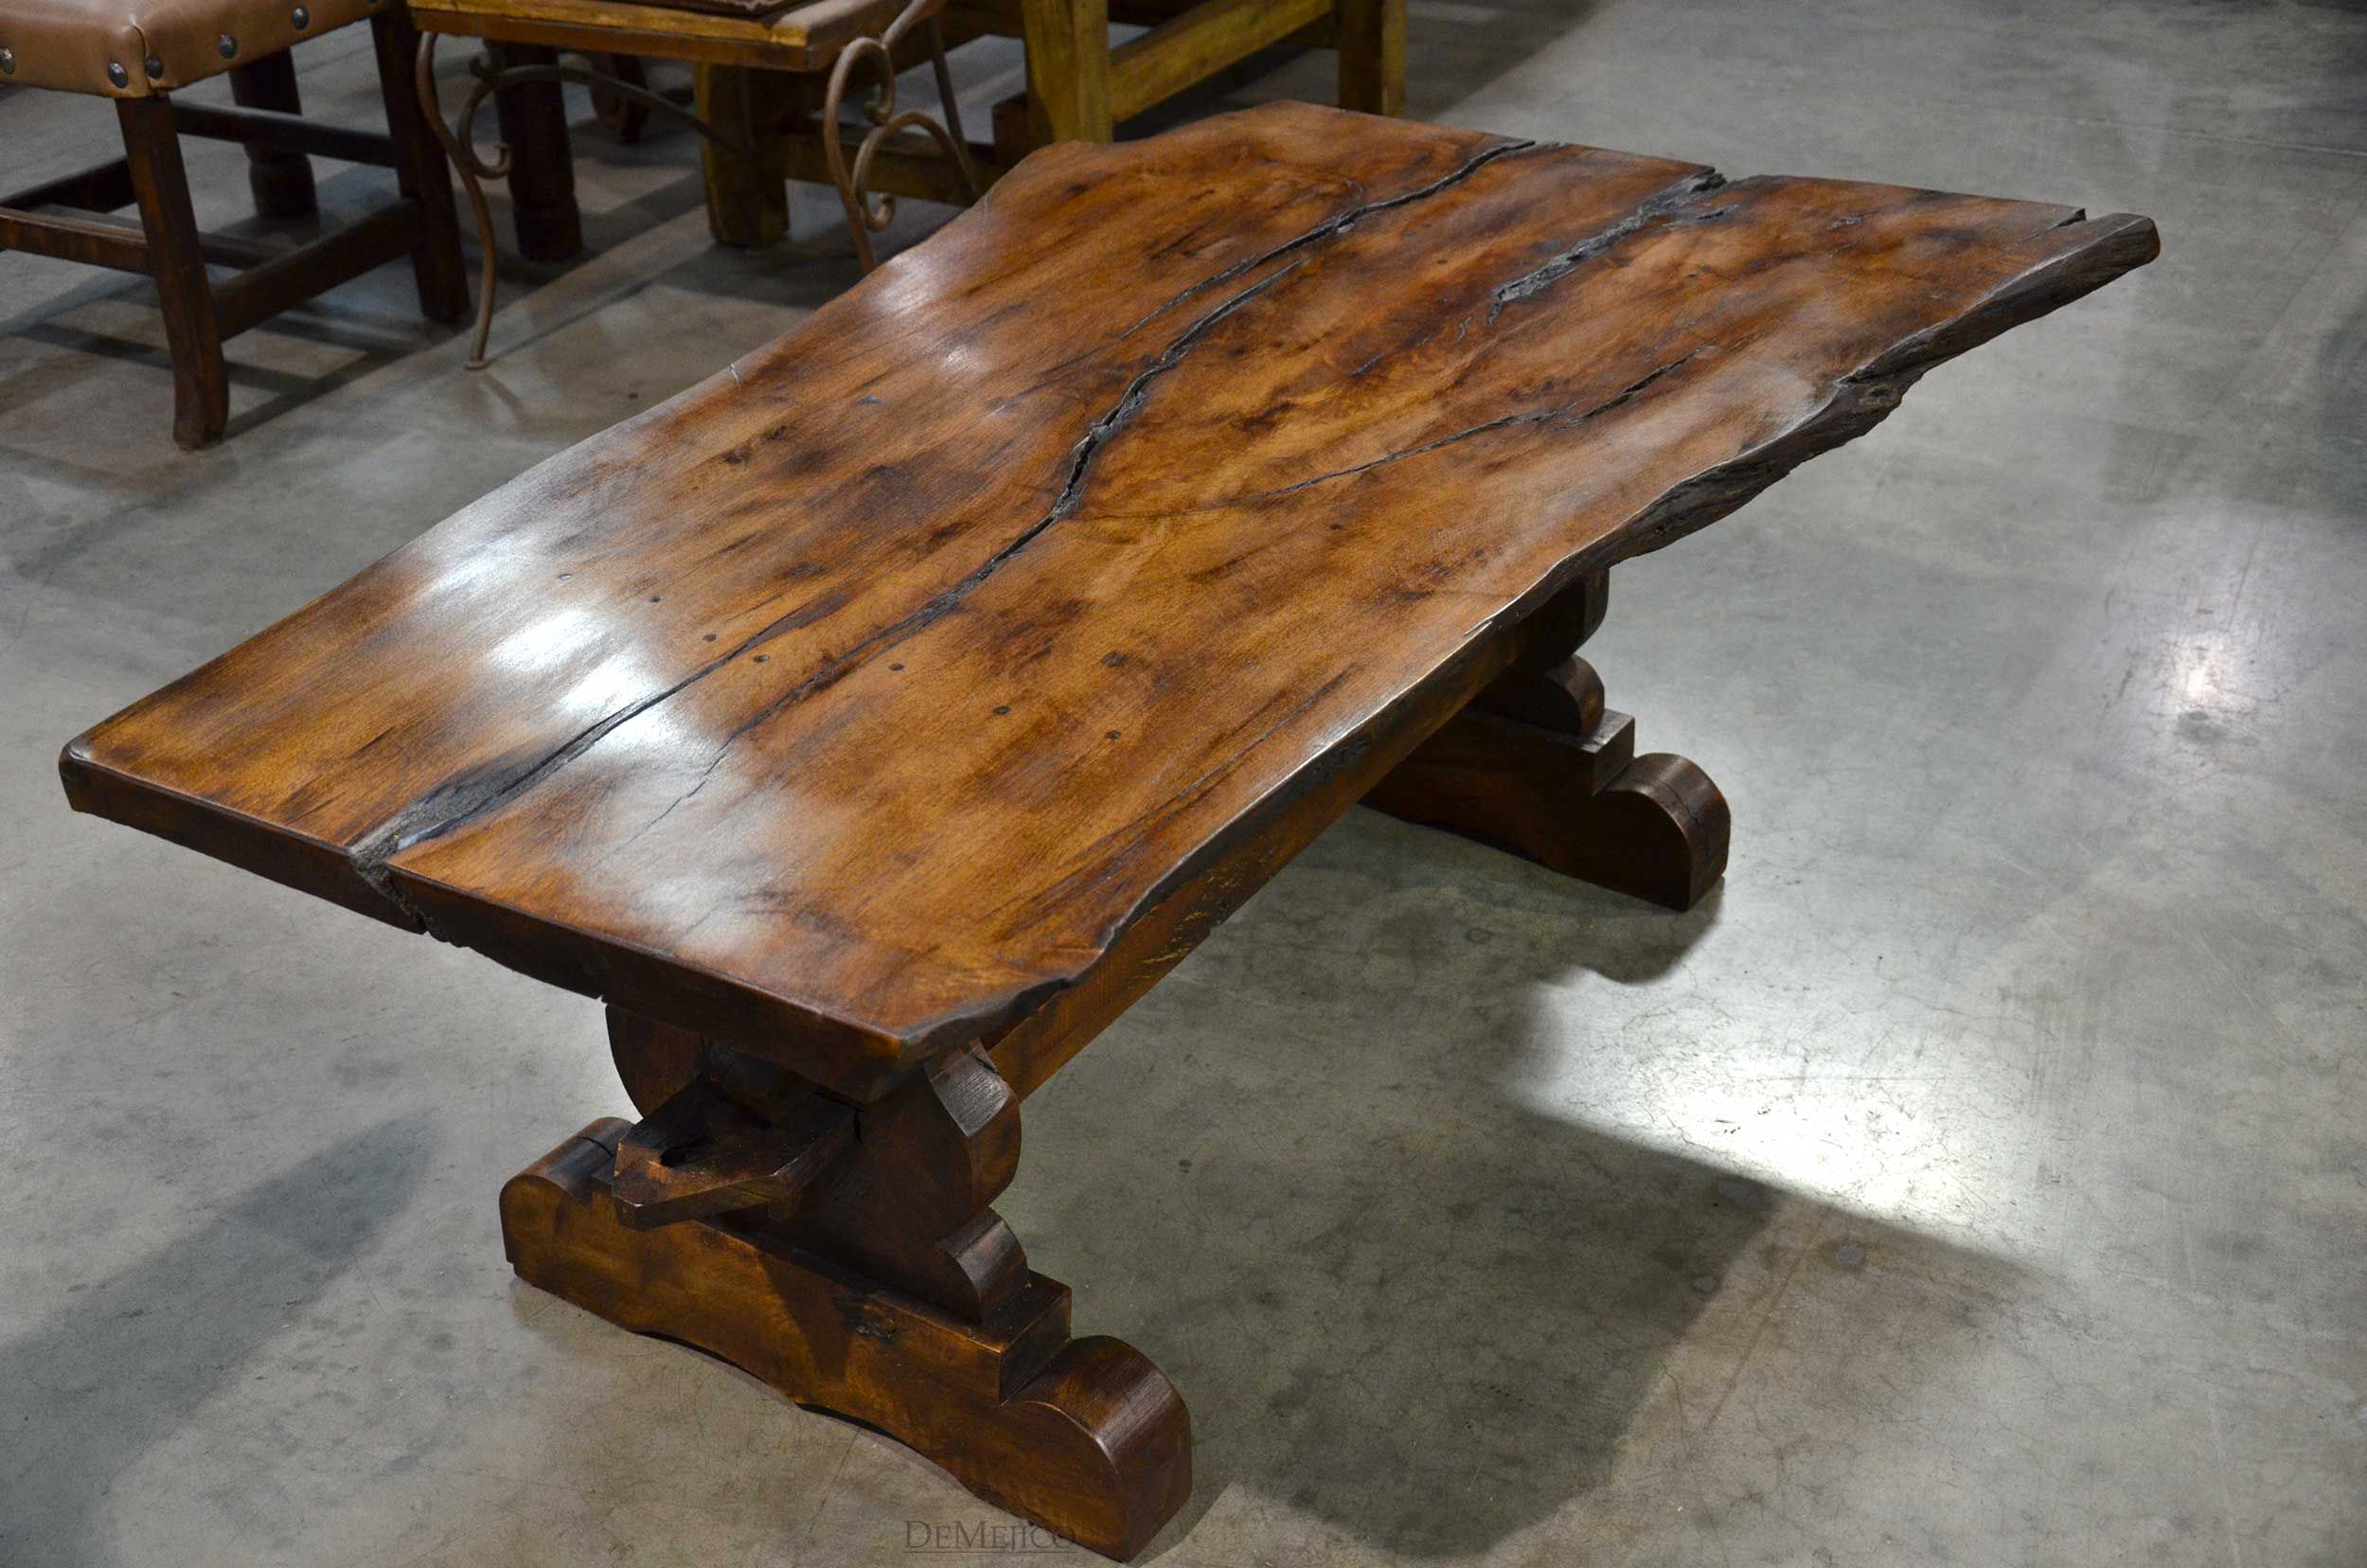 Tables rustic solid wood trestle pedestal base harvest dining table - The Planka Coffee Table Features A Naturally Shaped Solid Mesquite Wood Top Accented By A Custom Furniturefuture Housecoffee Tablesdining Room